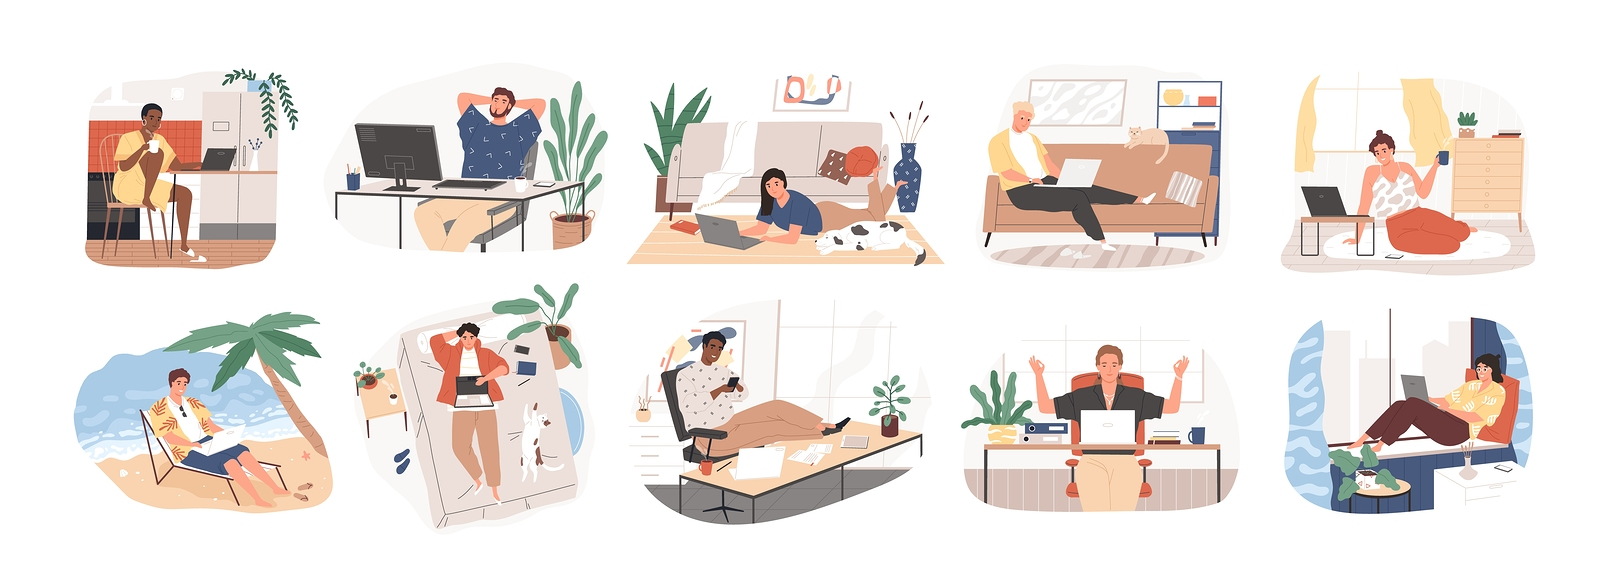 Freelance people work in comfortable conditions set vector flat illustration. Freelancer character working from home or beach at relaxed pace, convenient workplace. Man and woman self employed concept.